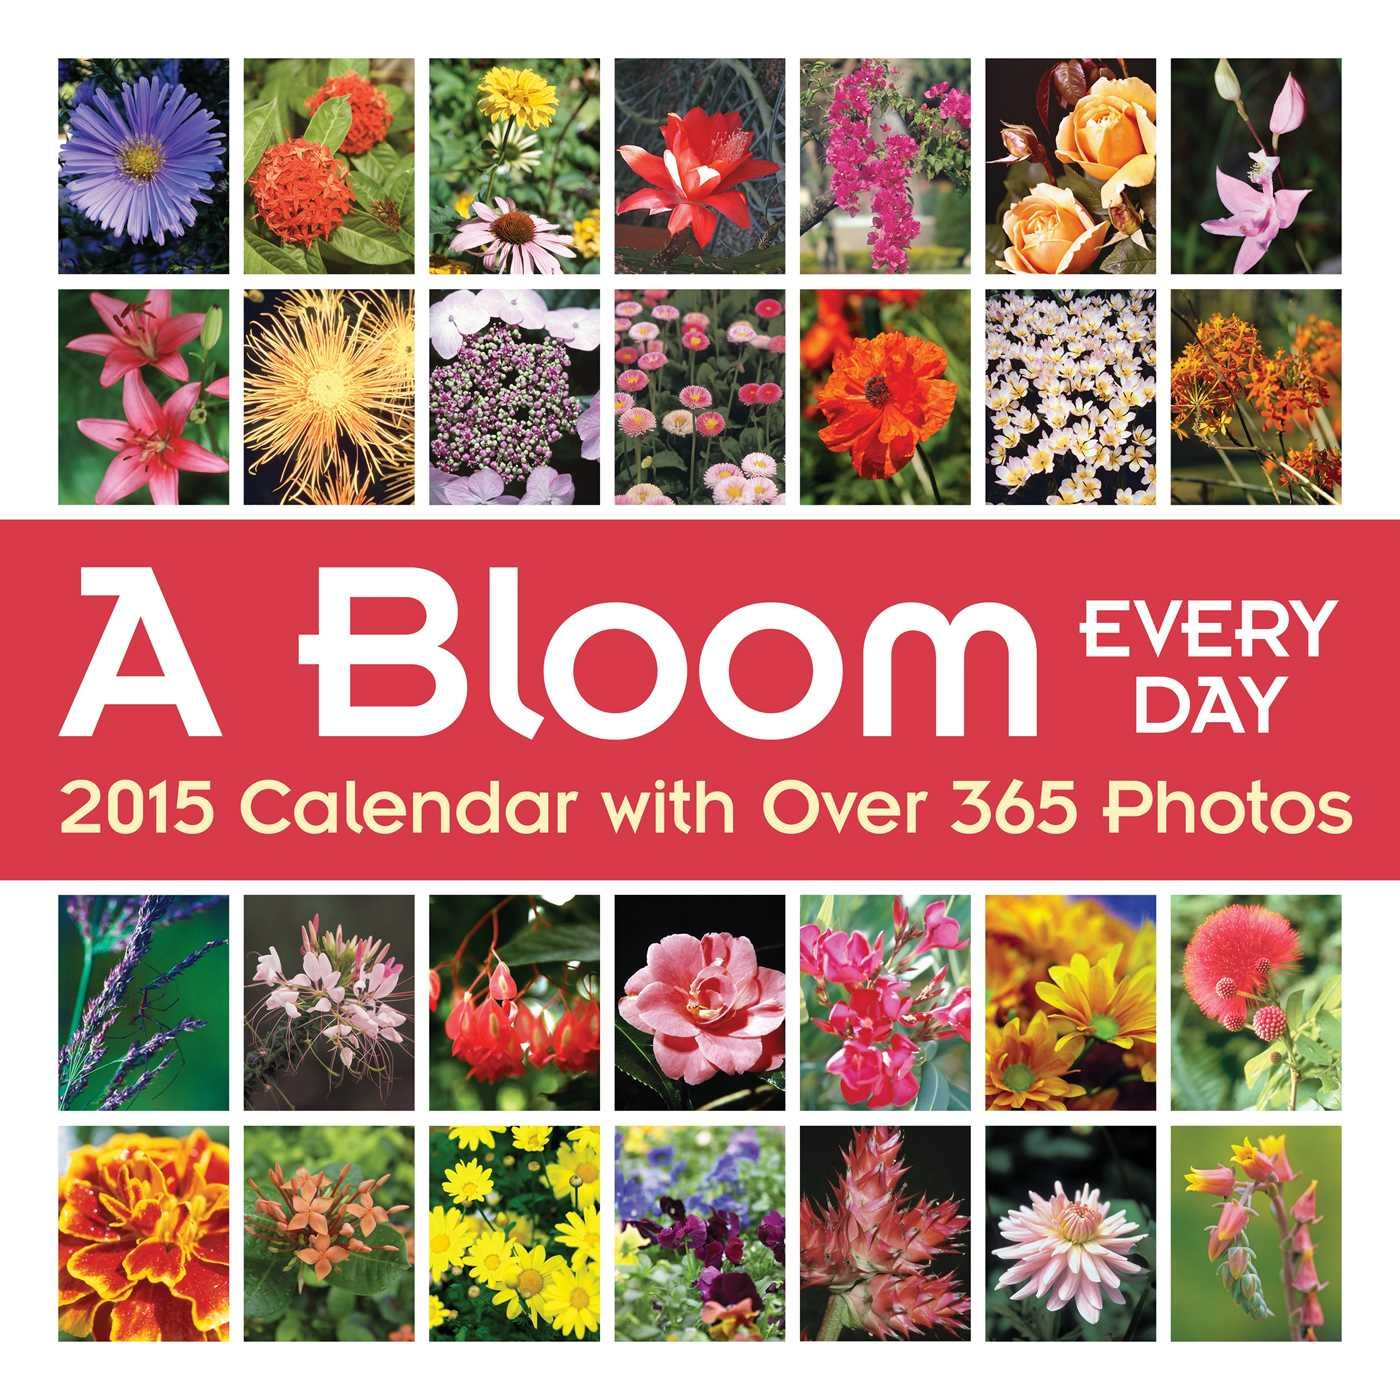 A Bloom Every Day 2015 Wall Calendar  With Over 365 Photos